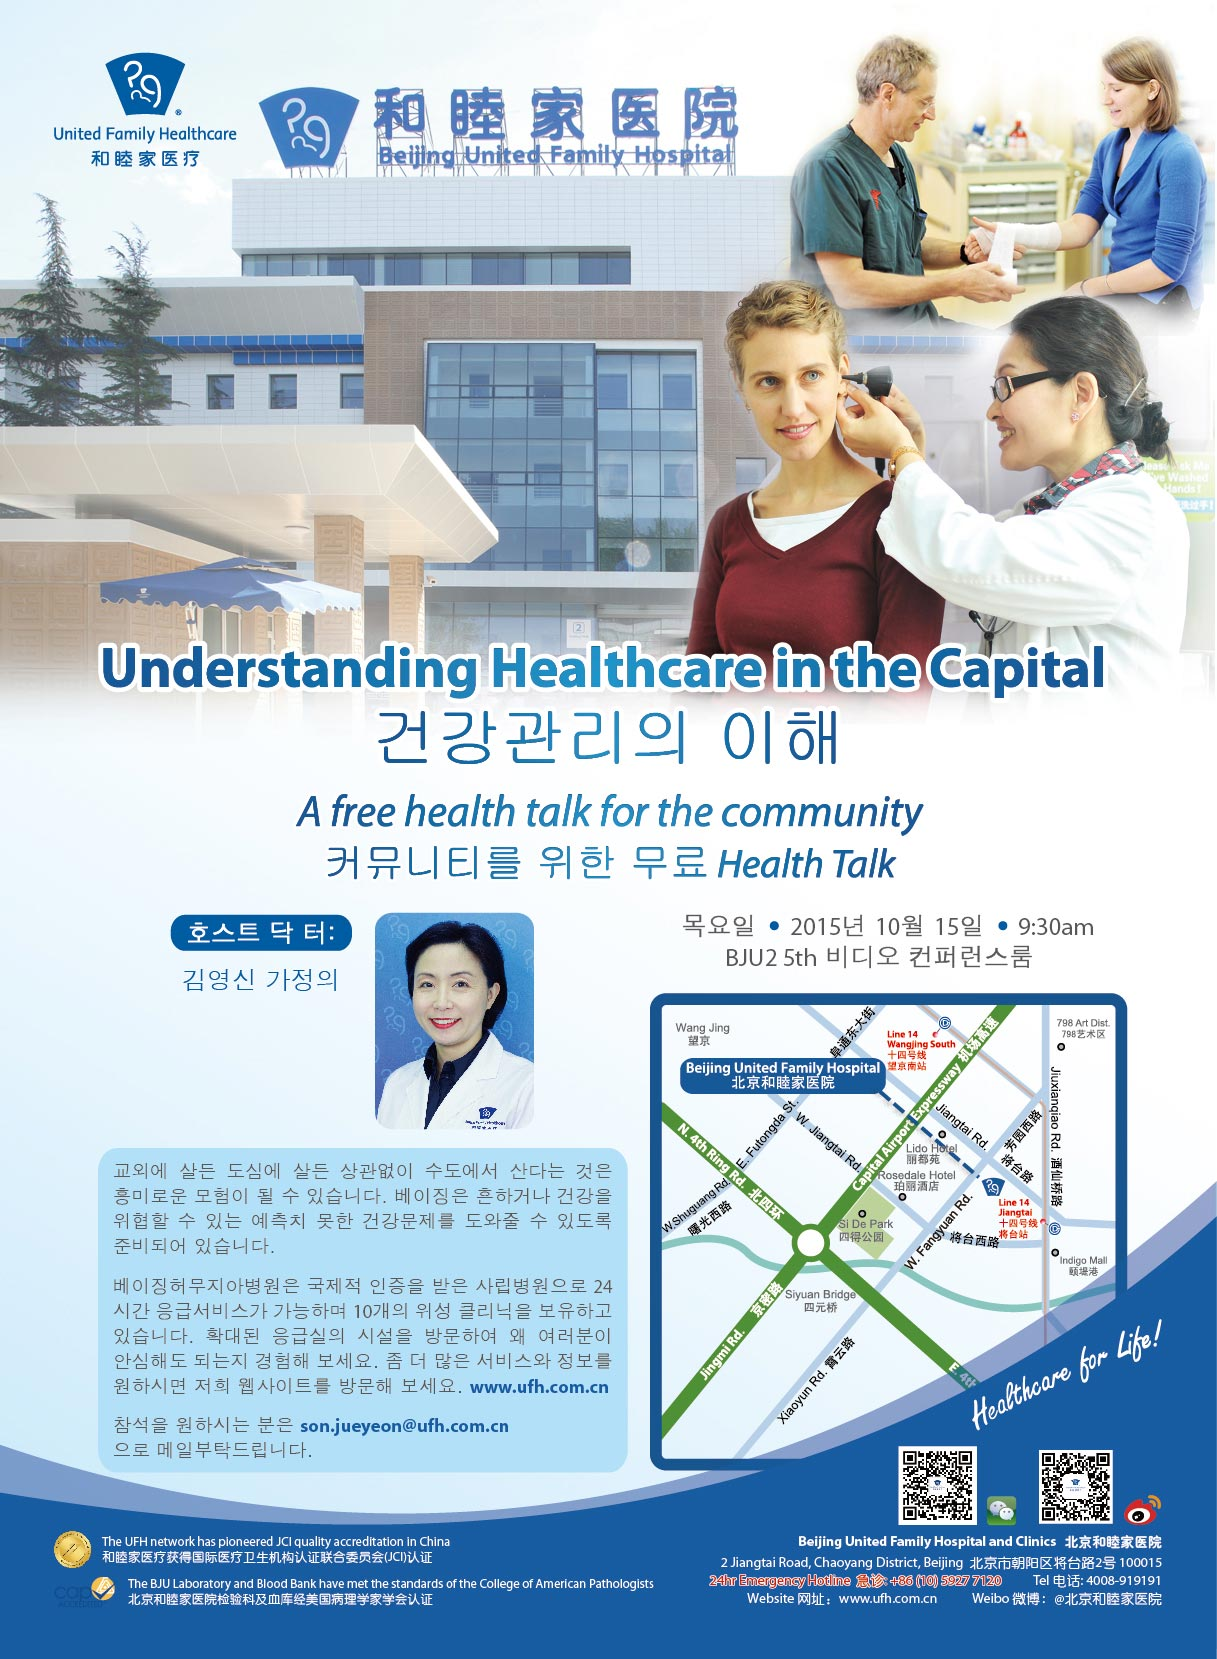 BJU_healthtalk_Flyer_Korean_10152015